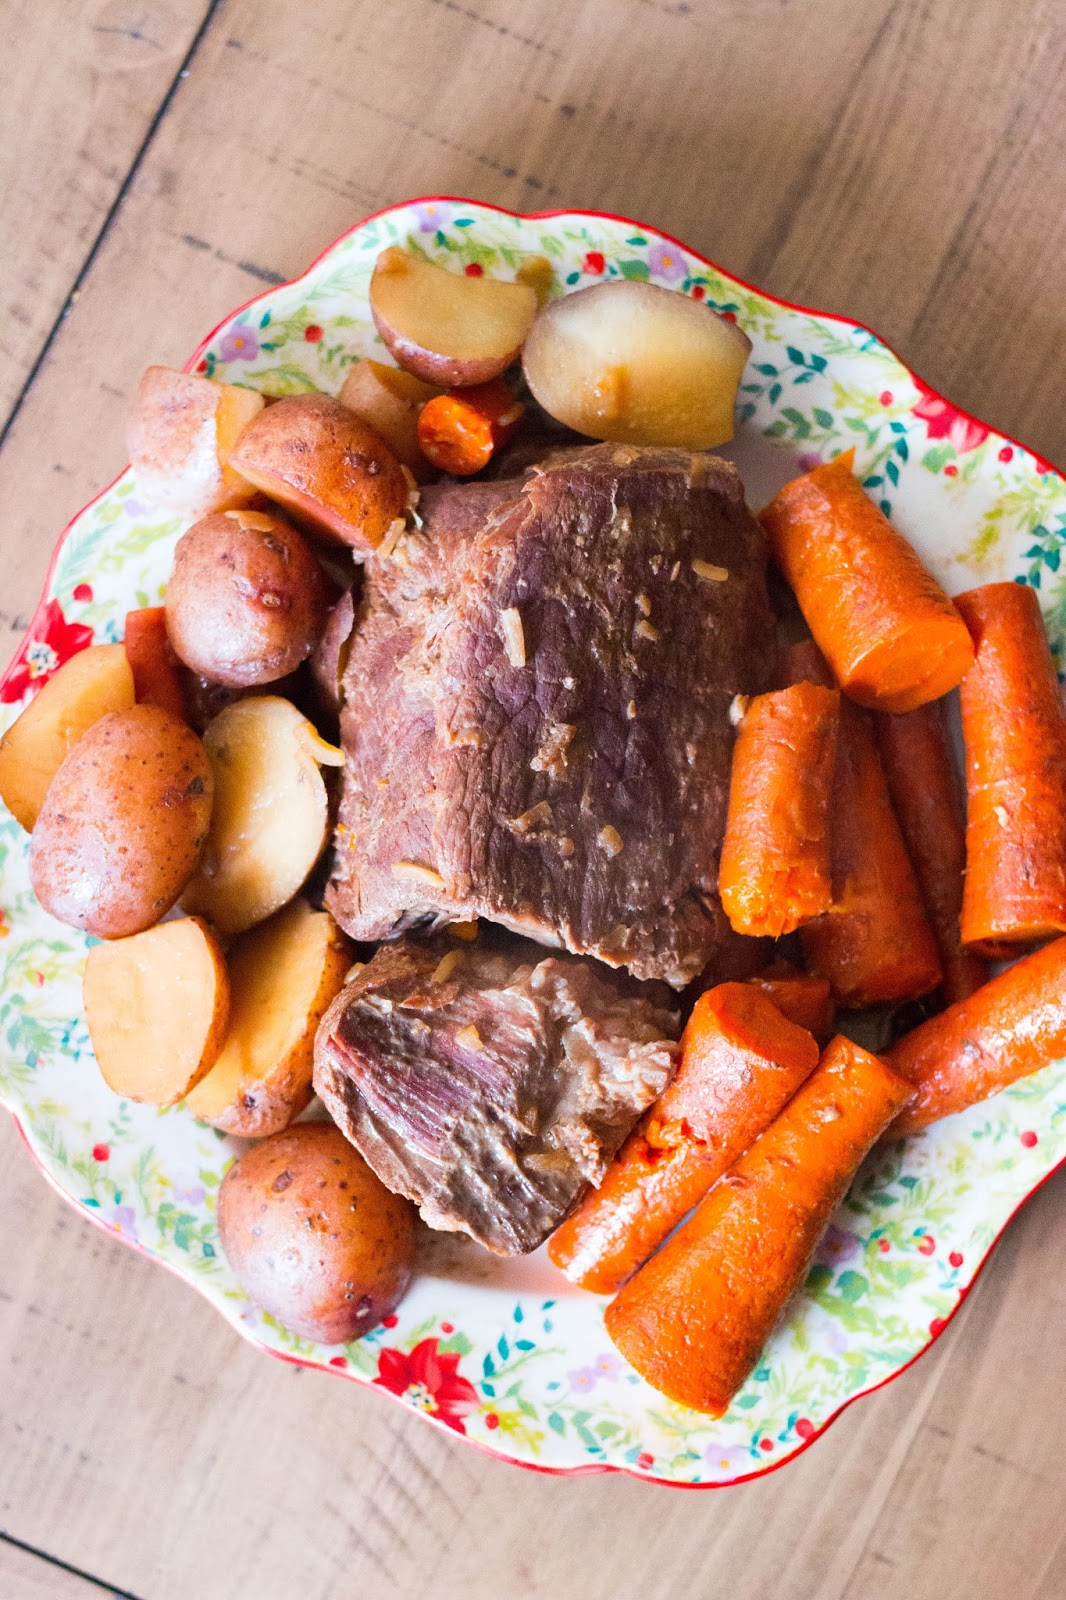 Best pot roast recipe slow cooker. Stove top pot roast recipe. Oven baked chuck roast recipe. Pot roast recipe instant pot. Quick church roast recipe. Juicy pot roast in oven. Campbells pot roast recipe oven. Chuck roast recipe slow cooker.